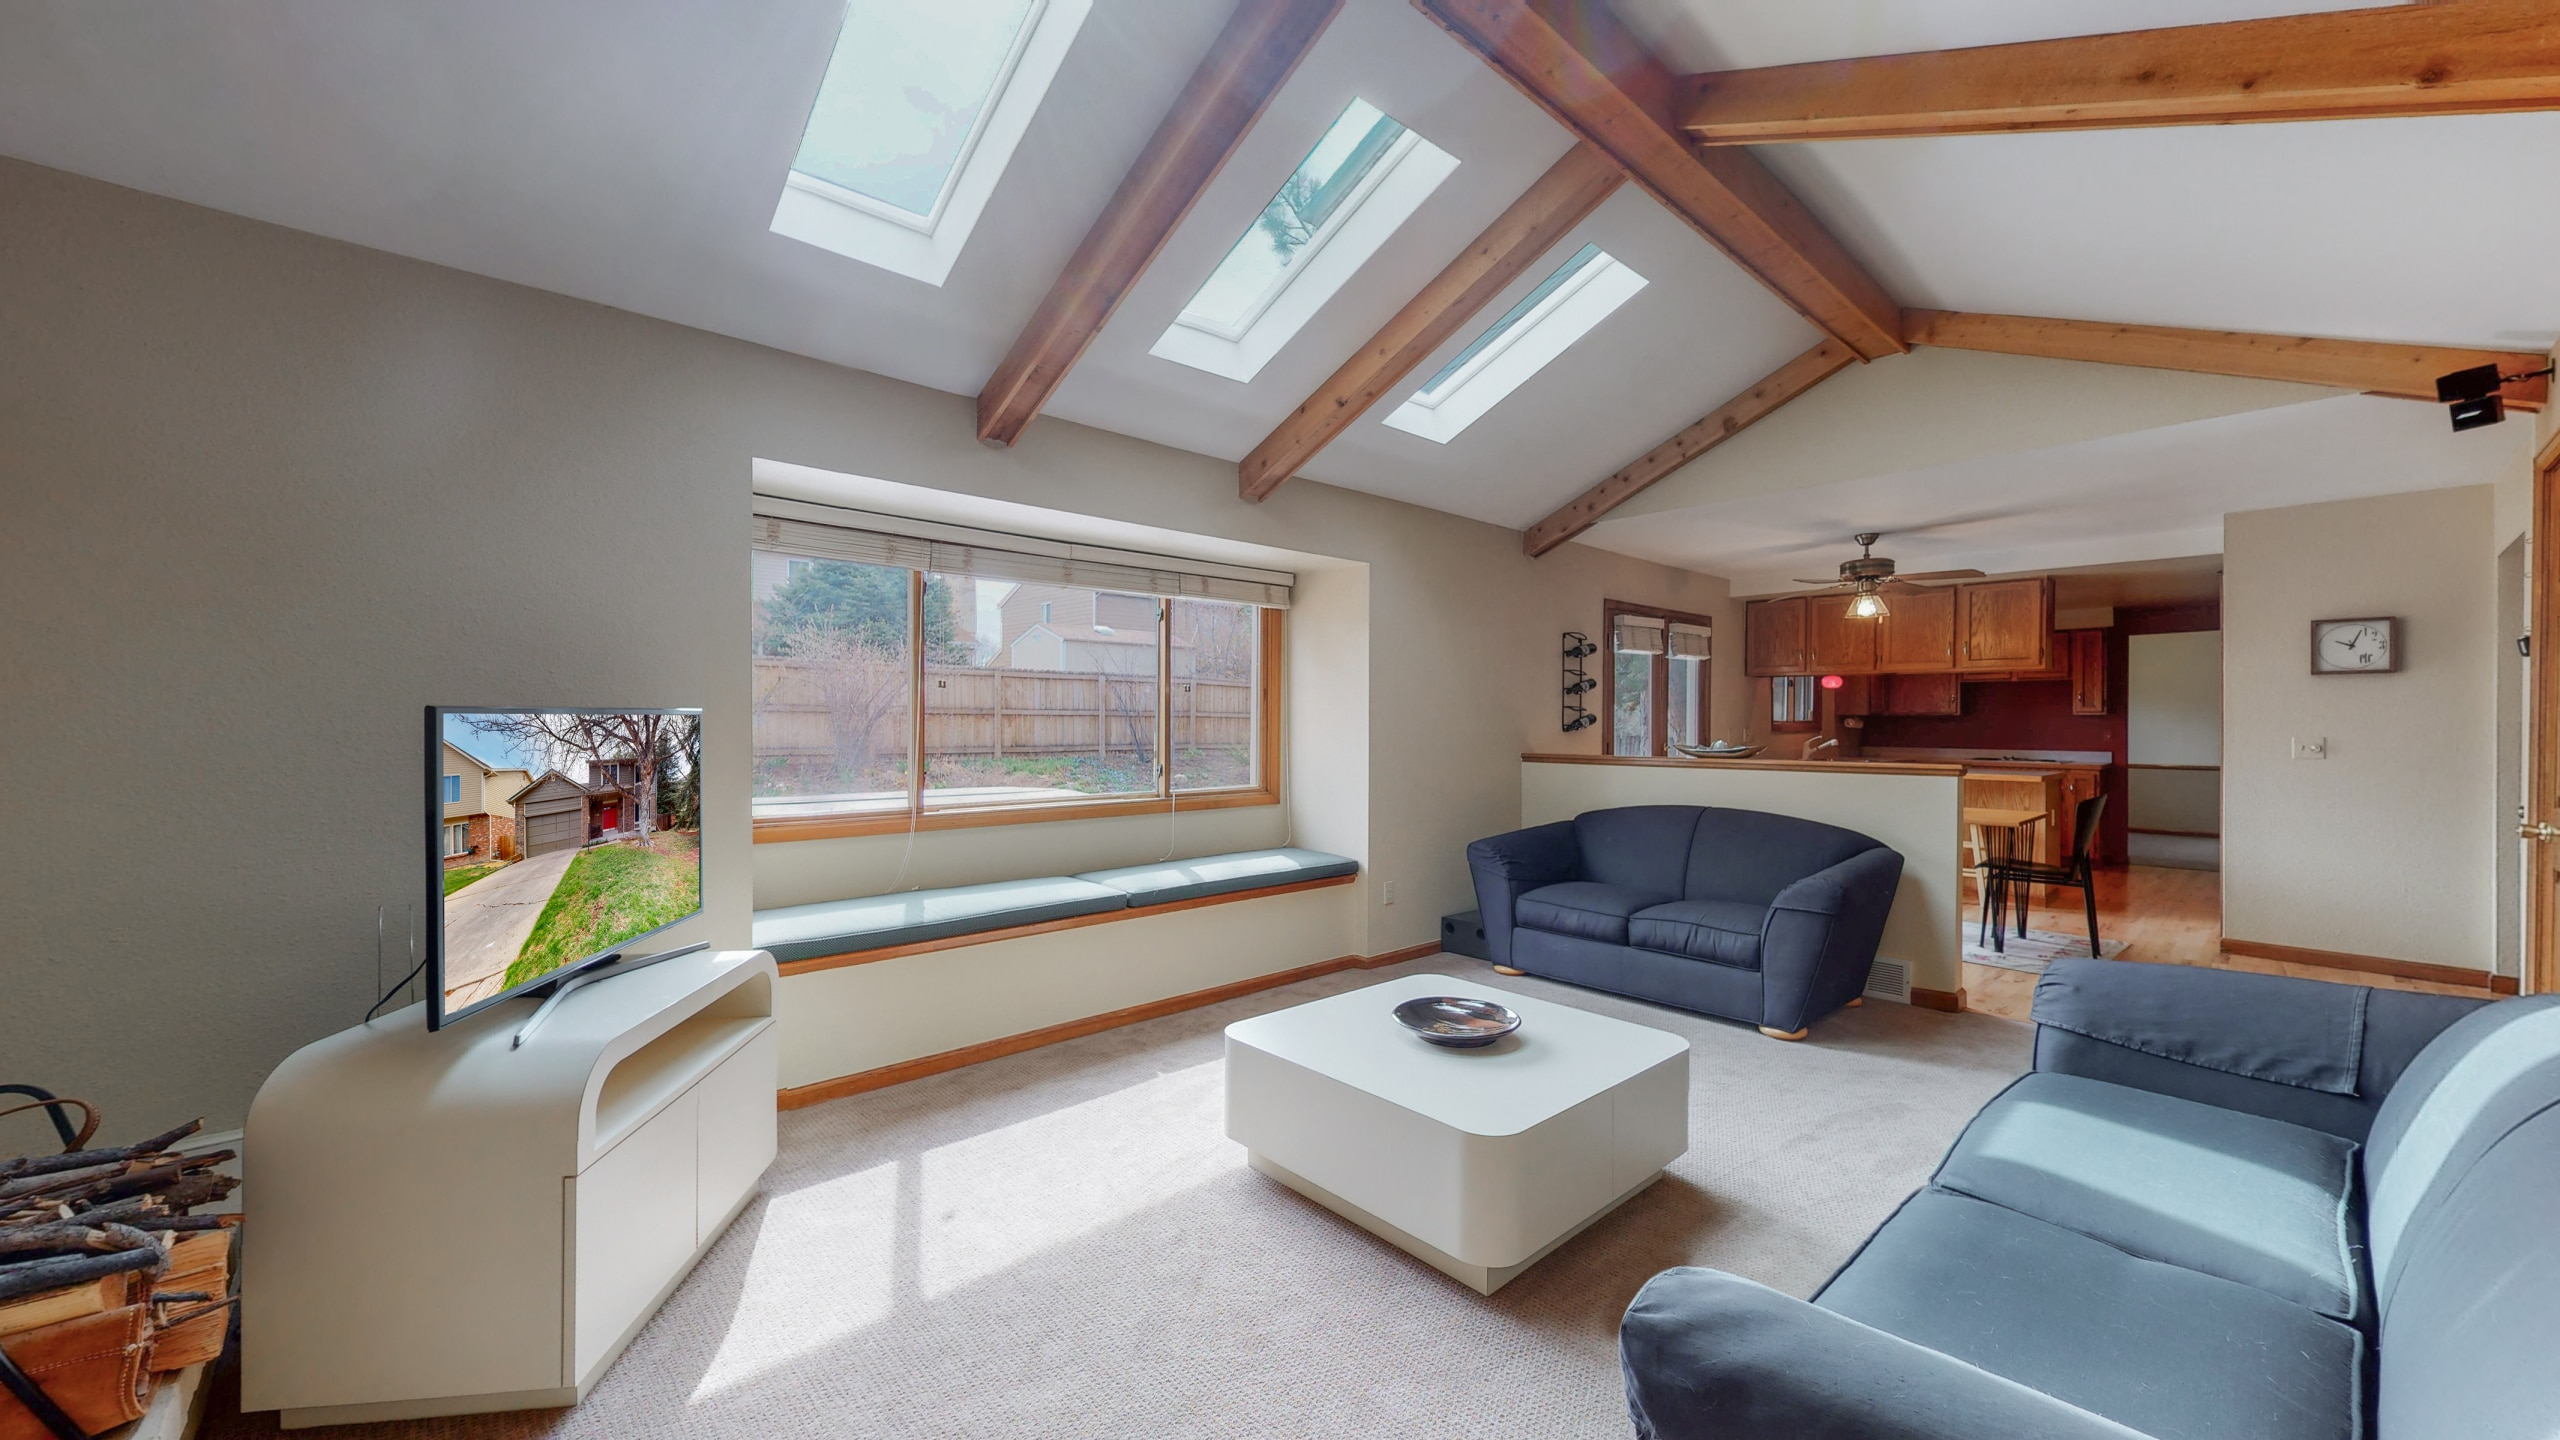 Natural wood beams highlighted by skylights in living room